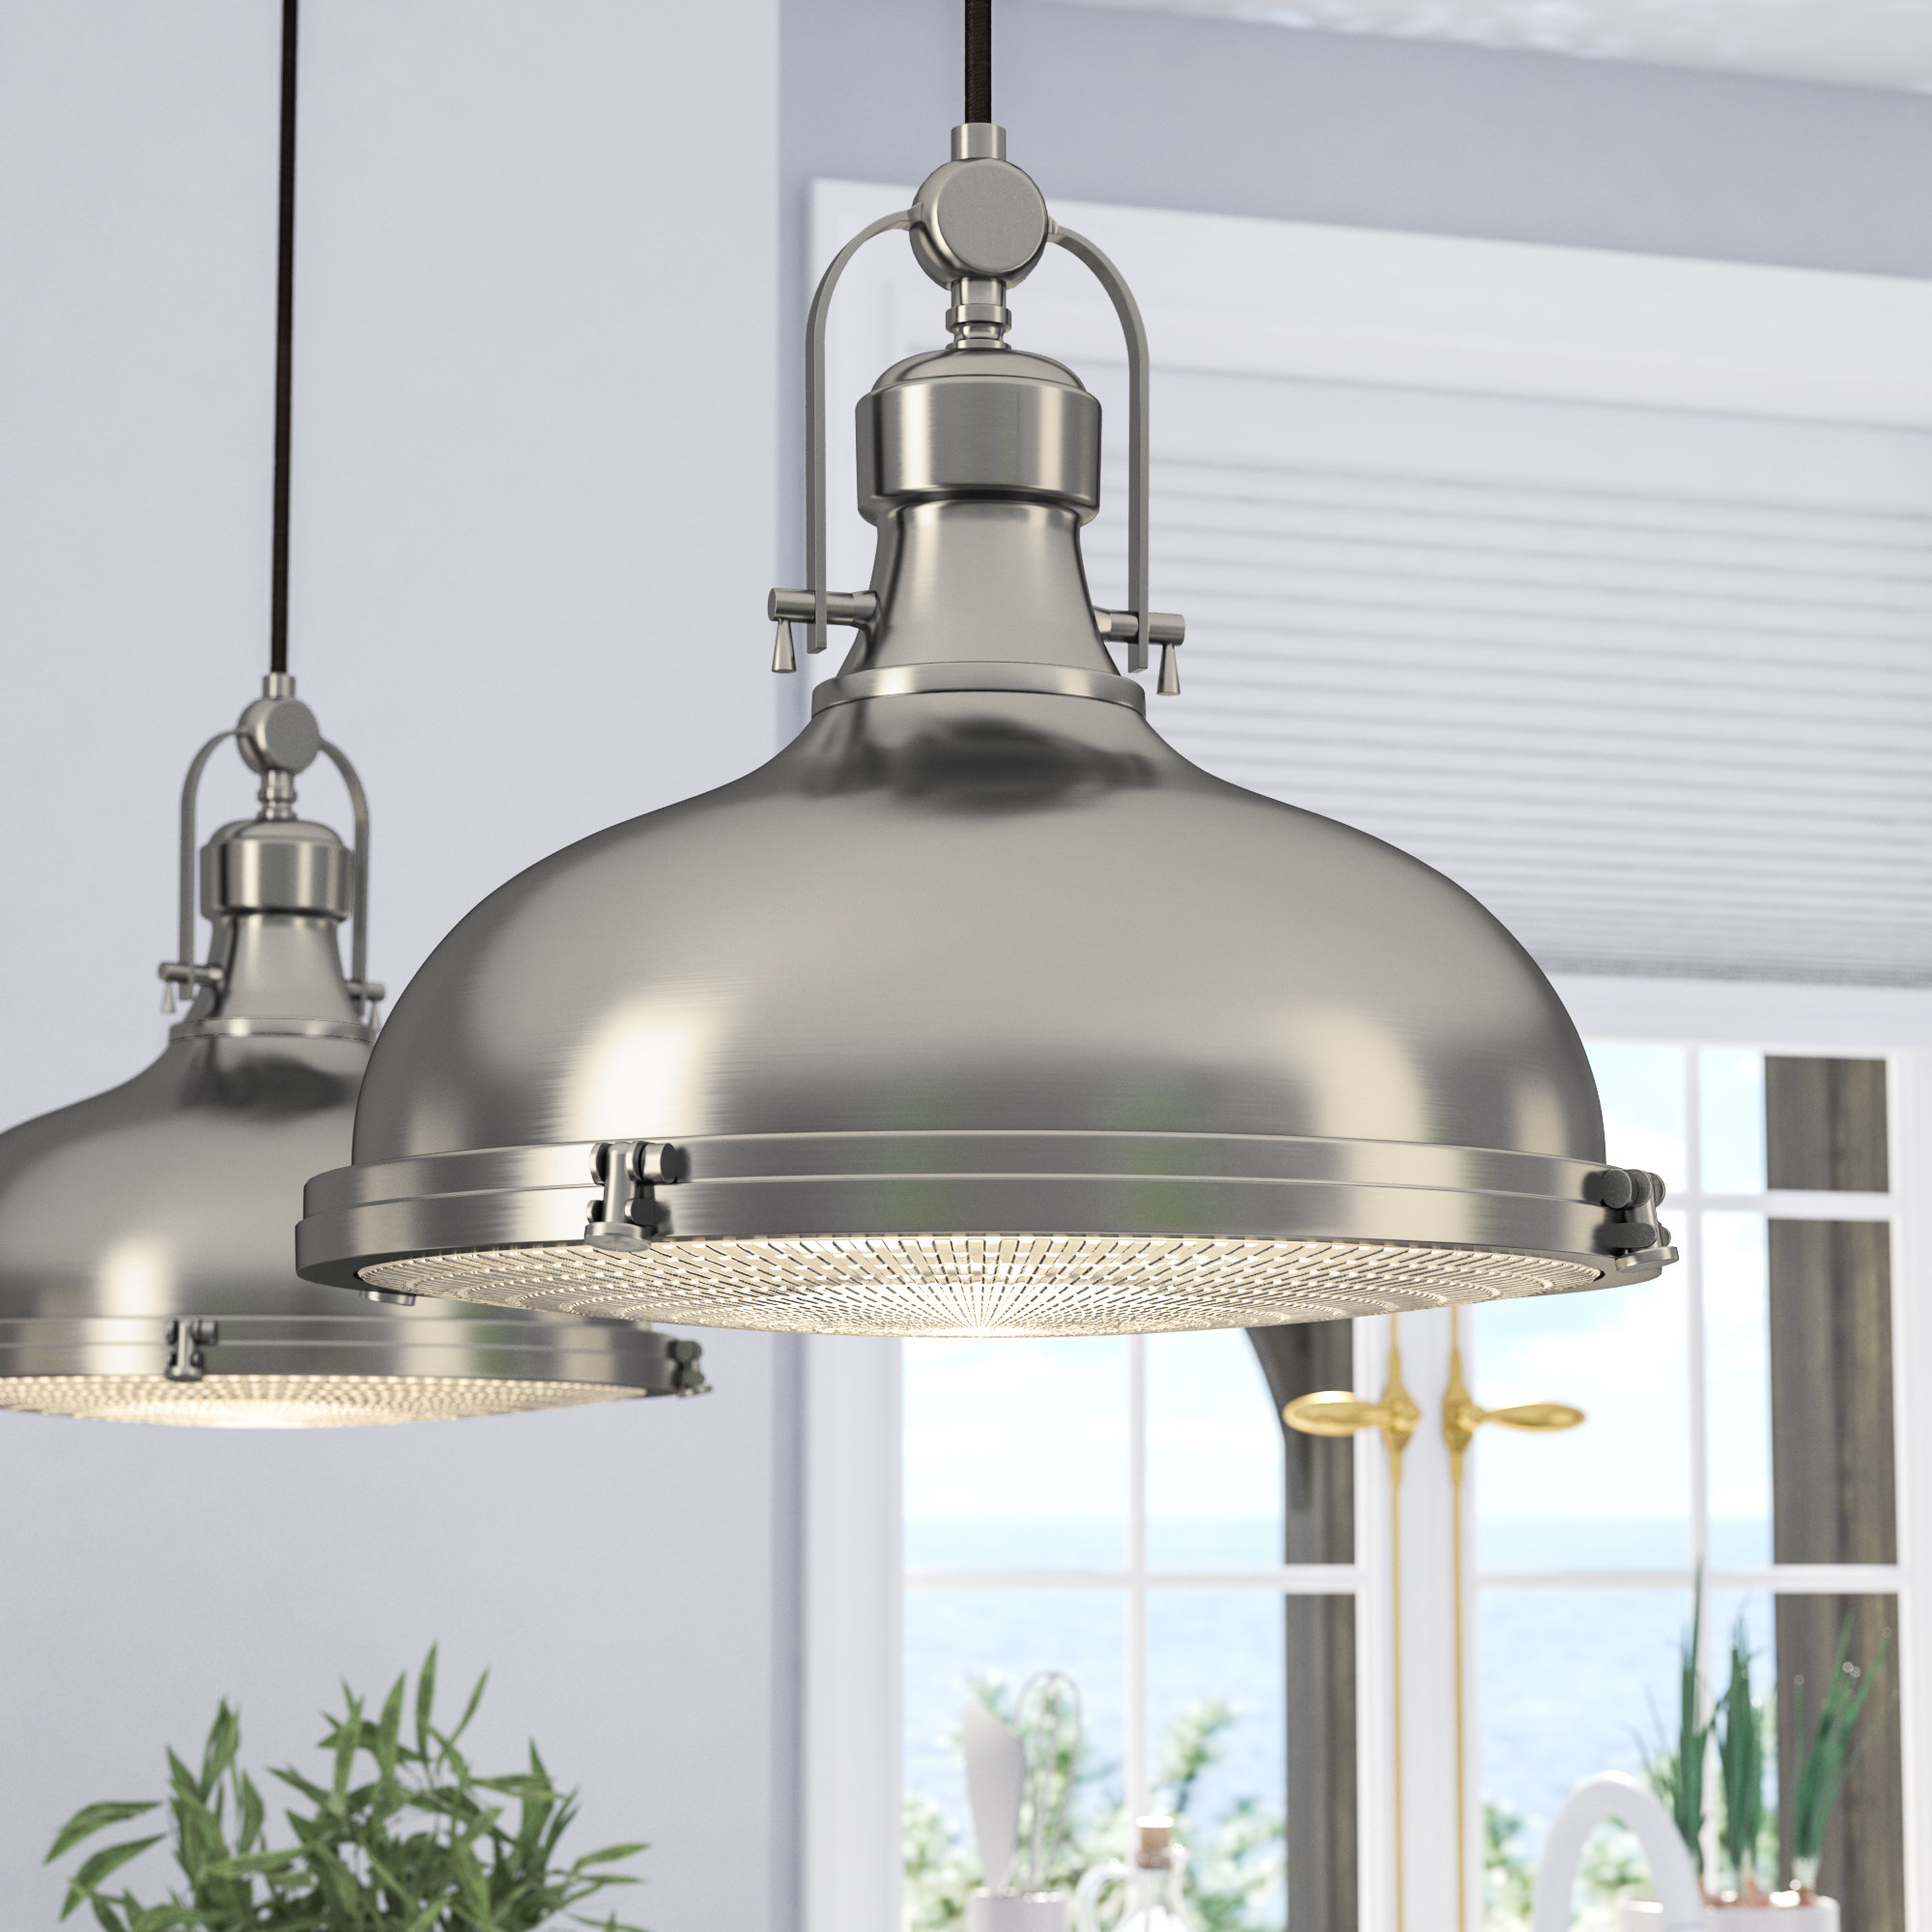 Newest Macon 1 Light Single Dome Pendants In Attles 1 Light Dome Pendant – Inspirational Lighting Design (View 17 of 25)